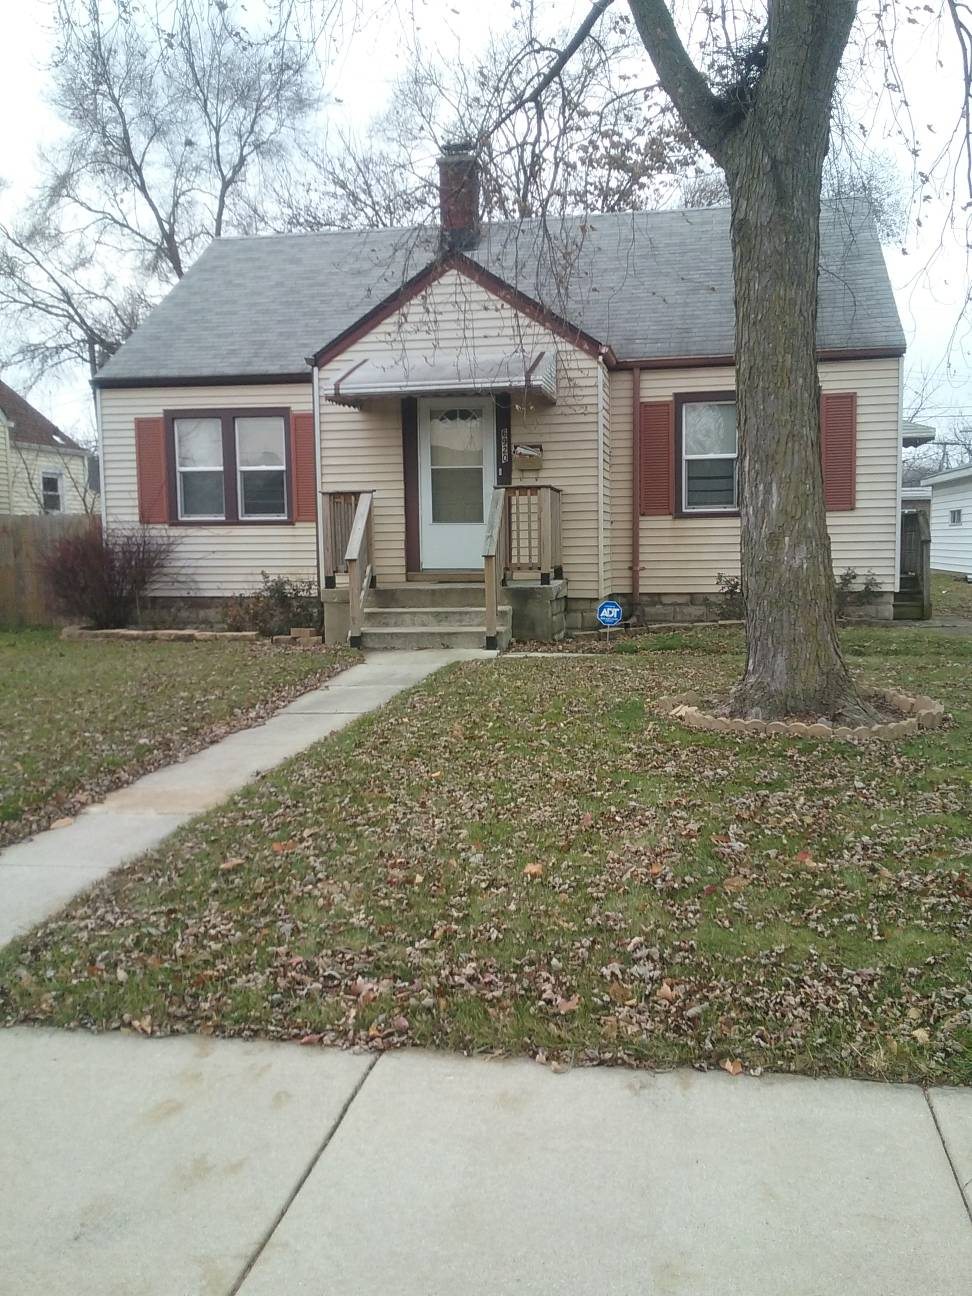 20 Best Apartments For Rent In Hammond, IN (with pictures)!